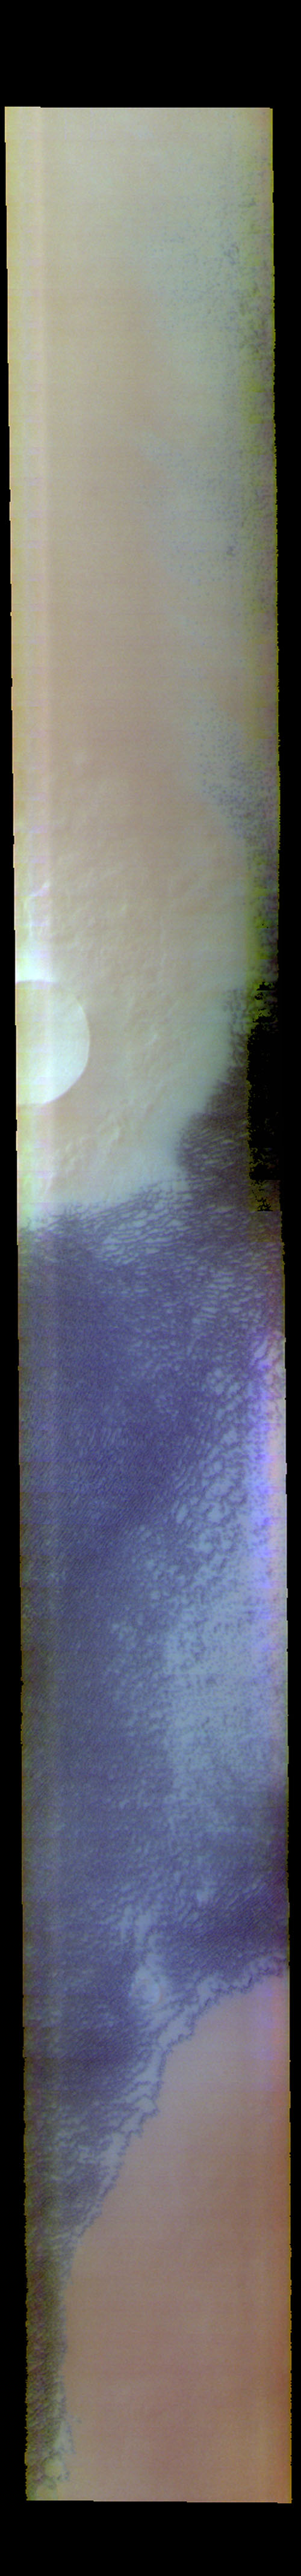 This image from NASA's Mars Odyssey shows sand dunes located near Escorial Crater and the north polar cap. The dune field is called Siton Undae.